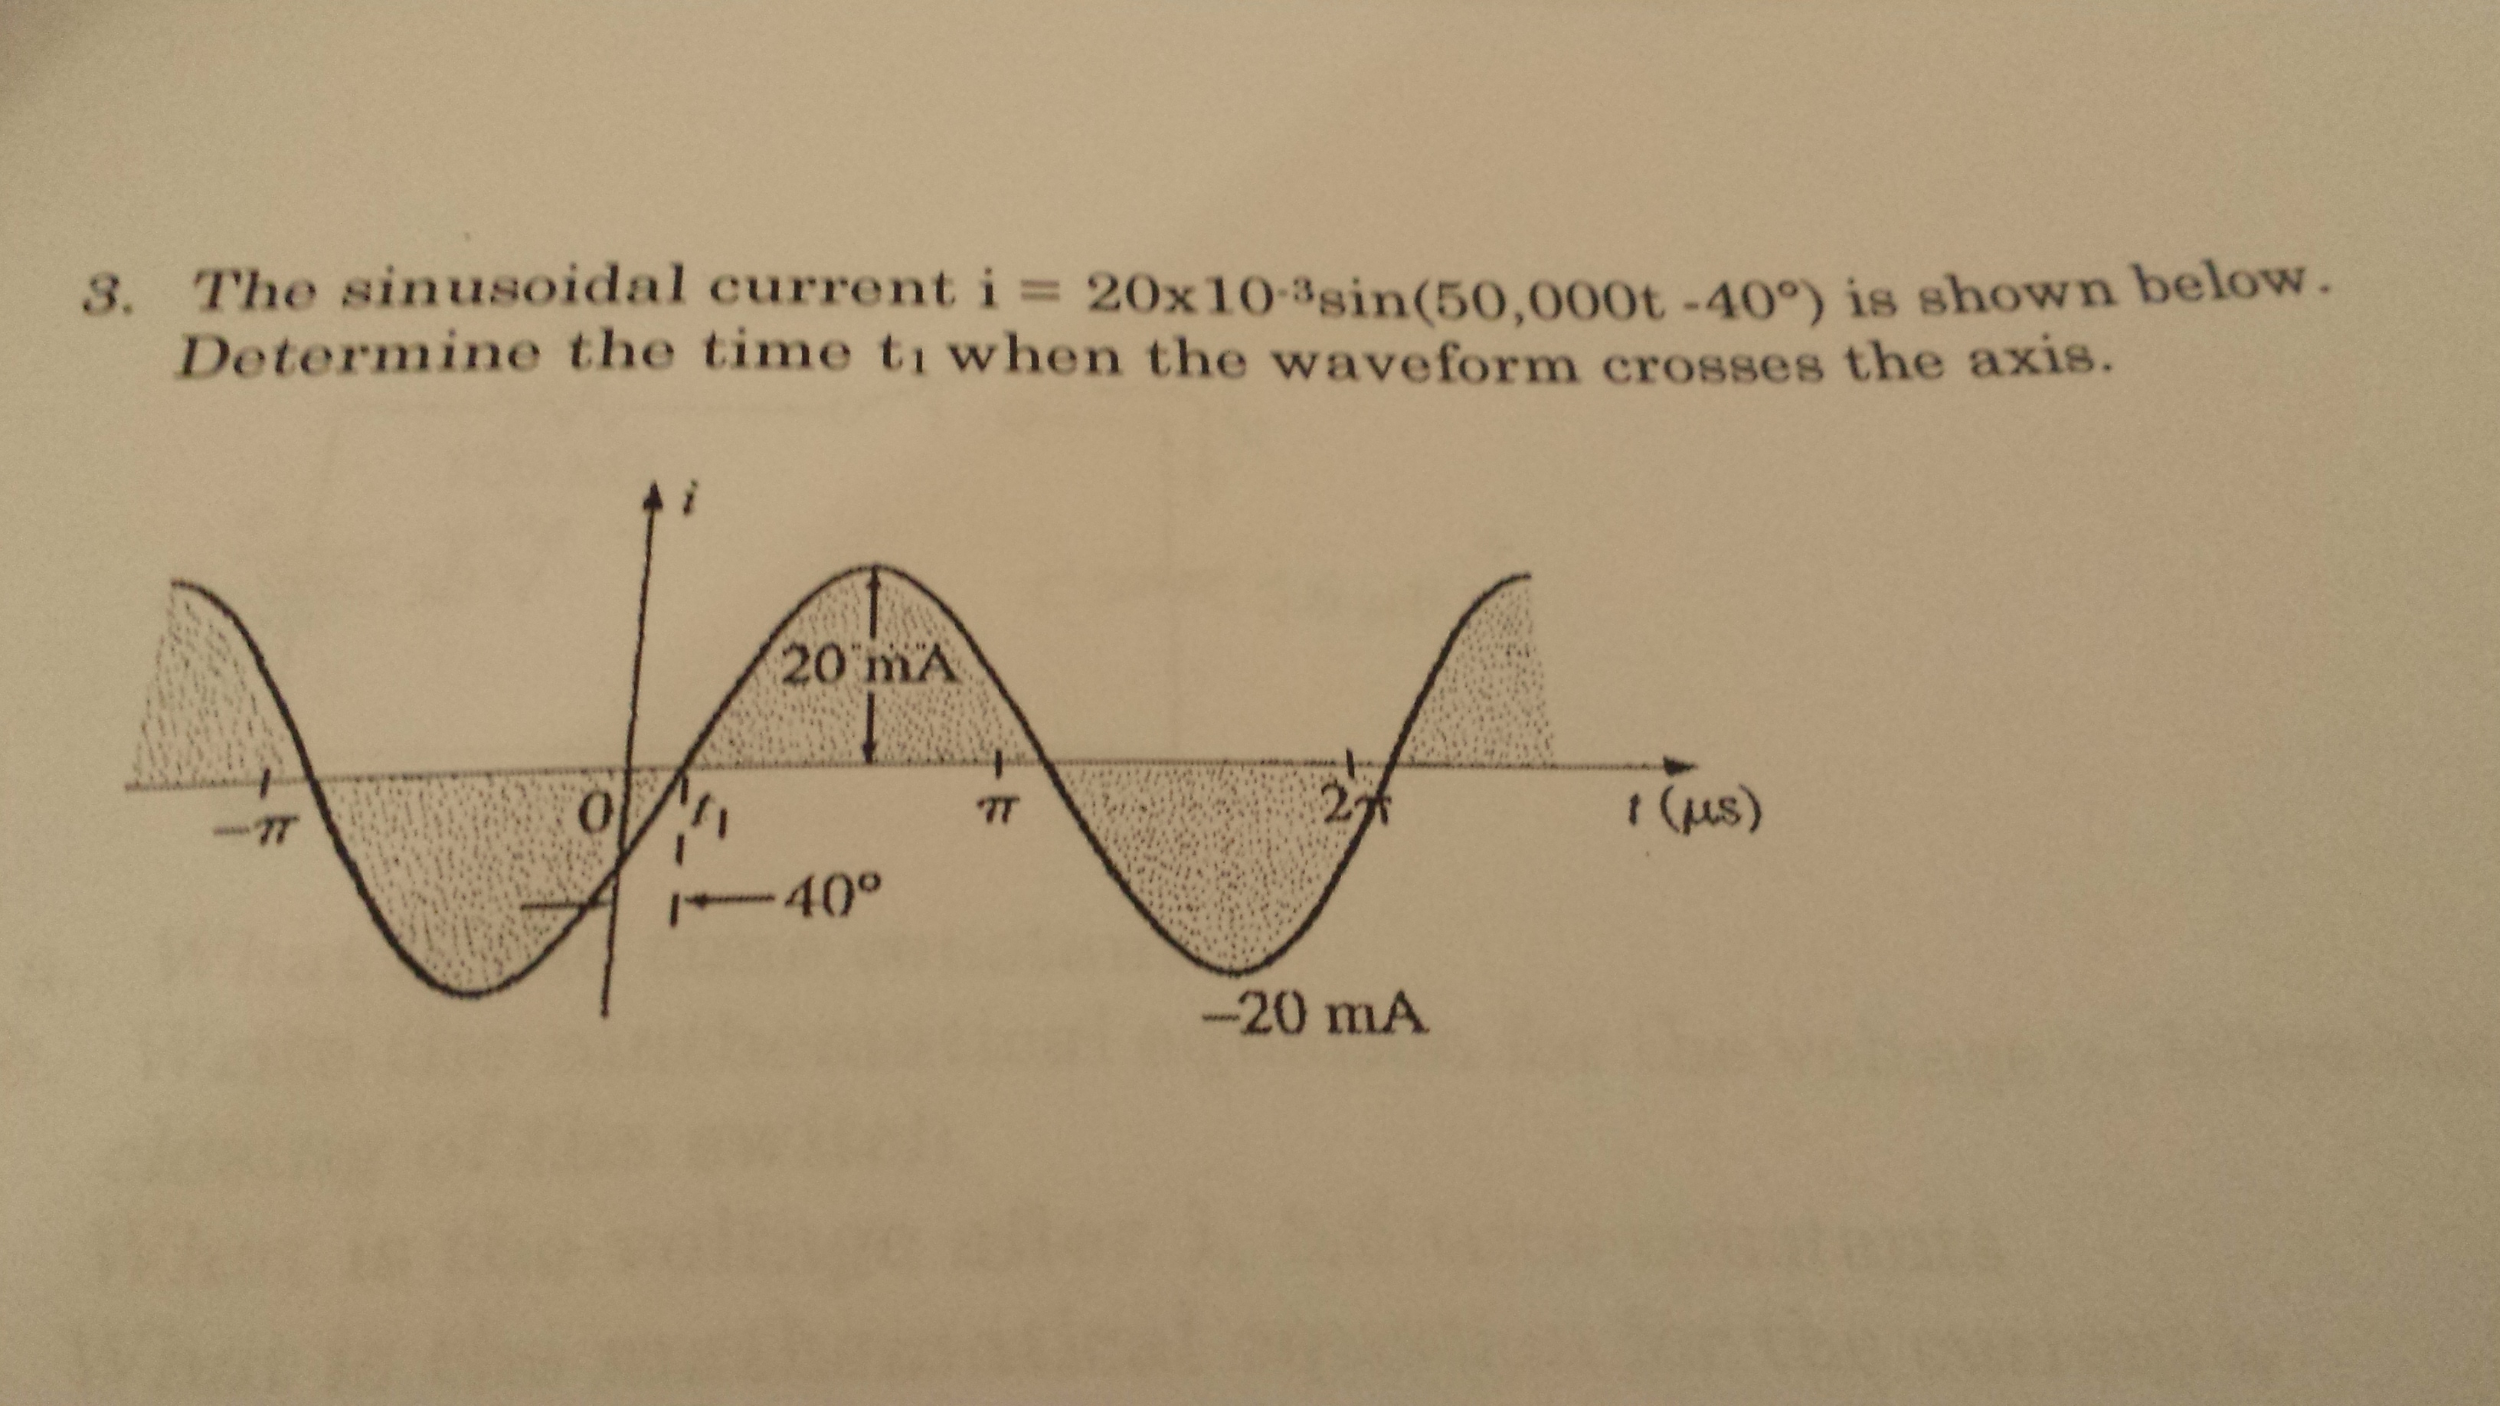 The sinusoidal current I = 20*10-3sin(50.000t-40 d